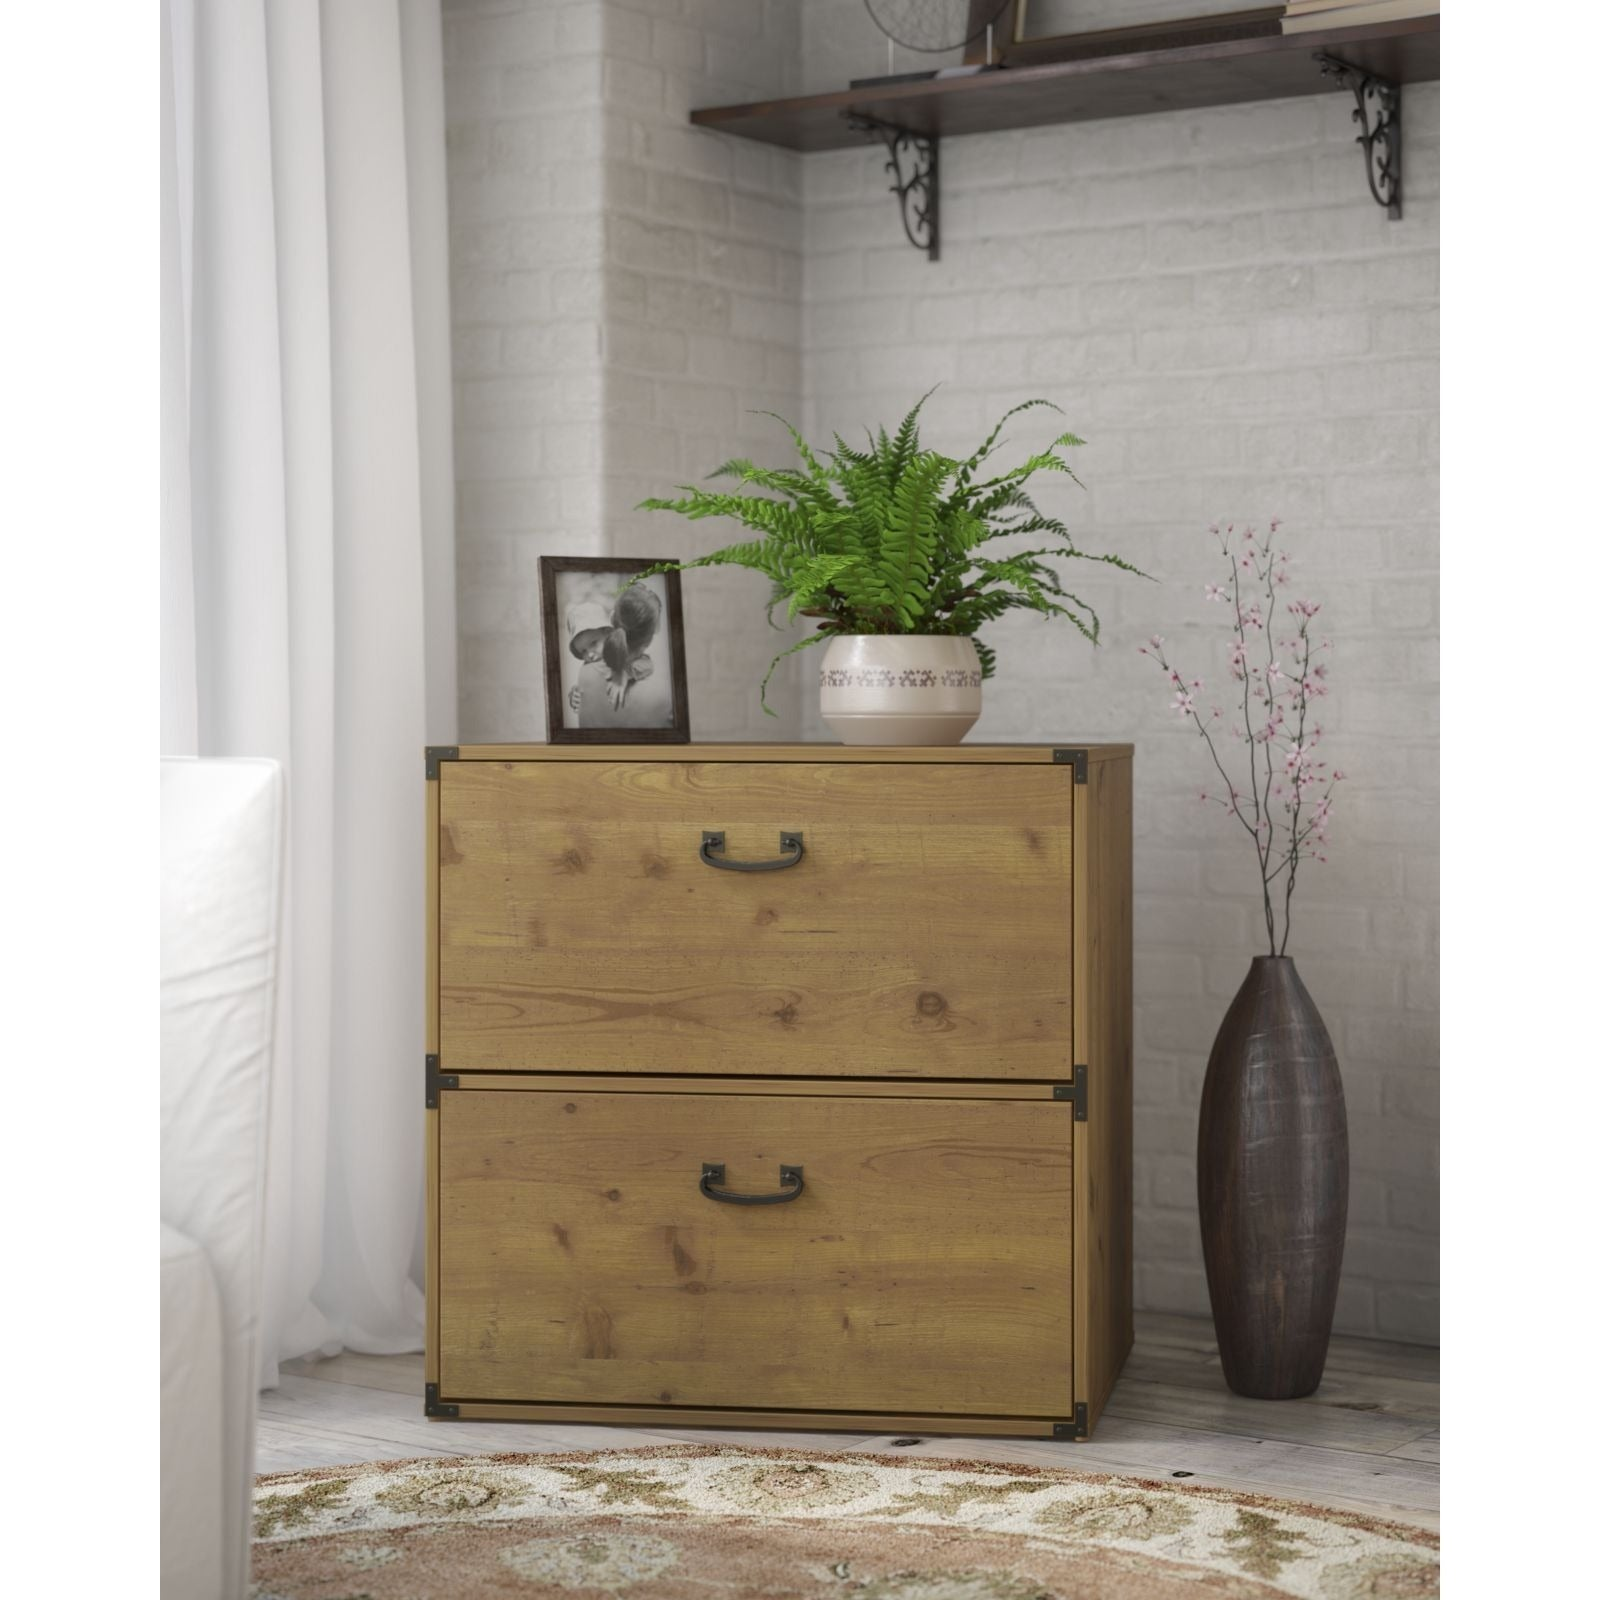 Shop kathy ireland office ironworks vintage golden pine lateral file cabinet free shipping today overstock com 11589800